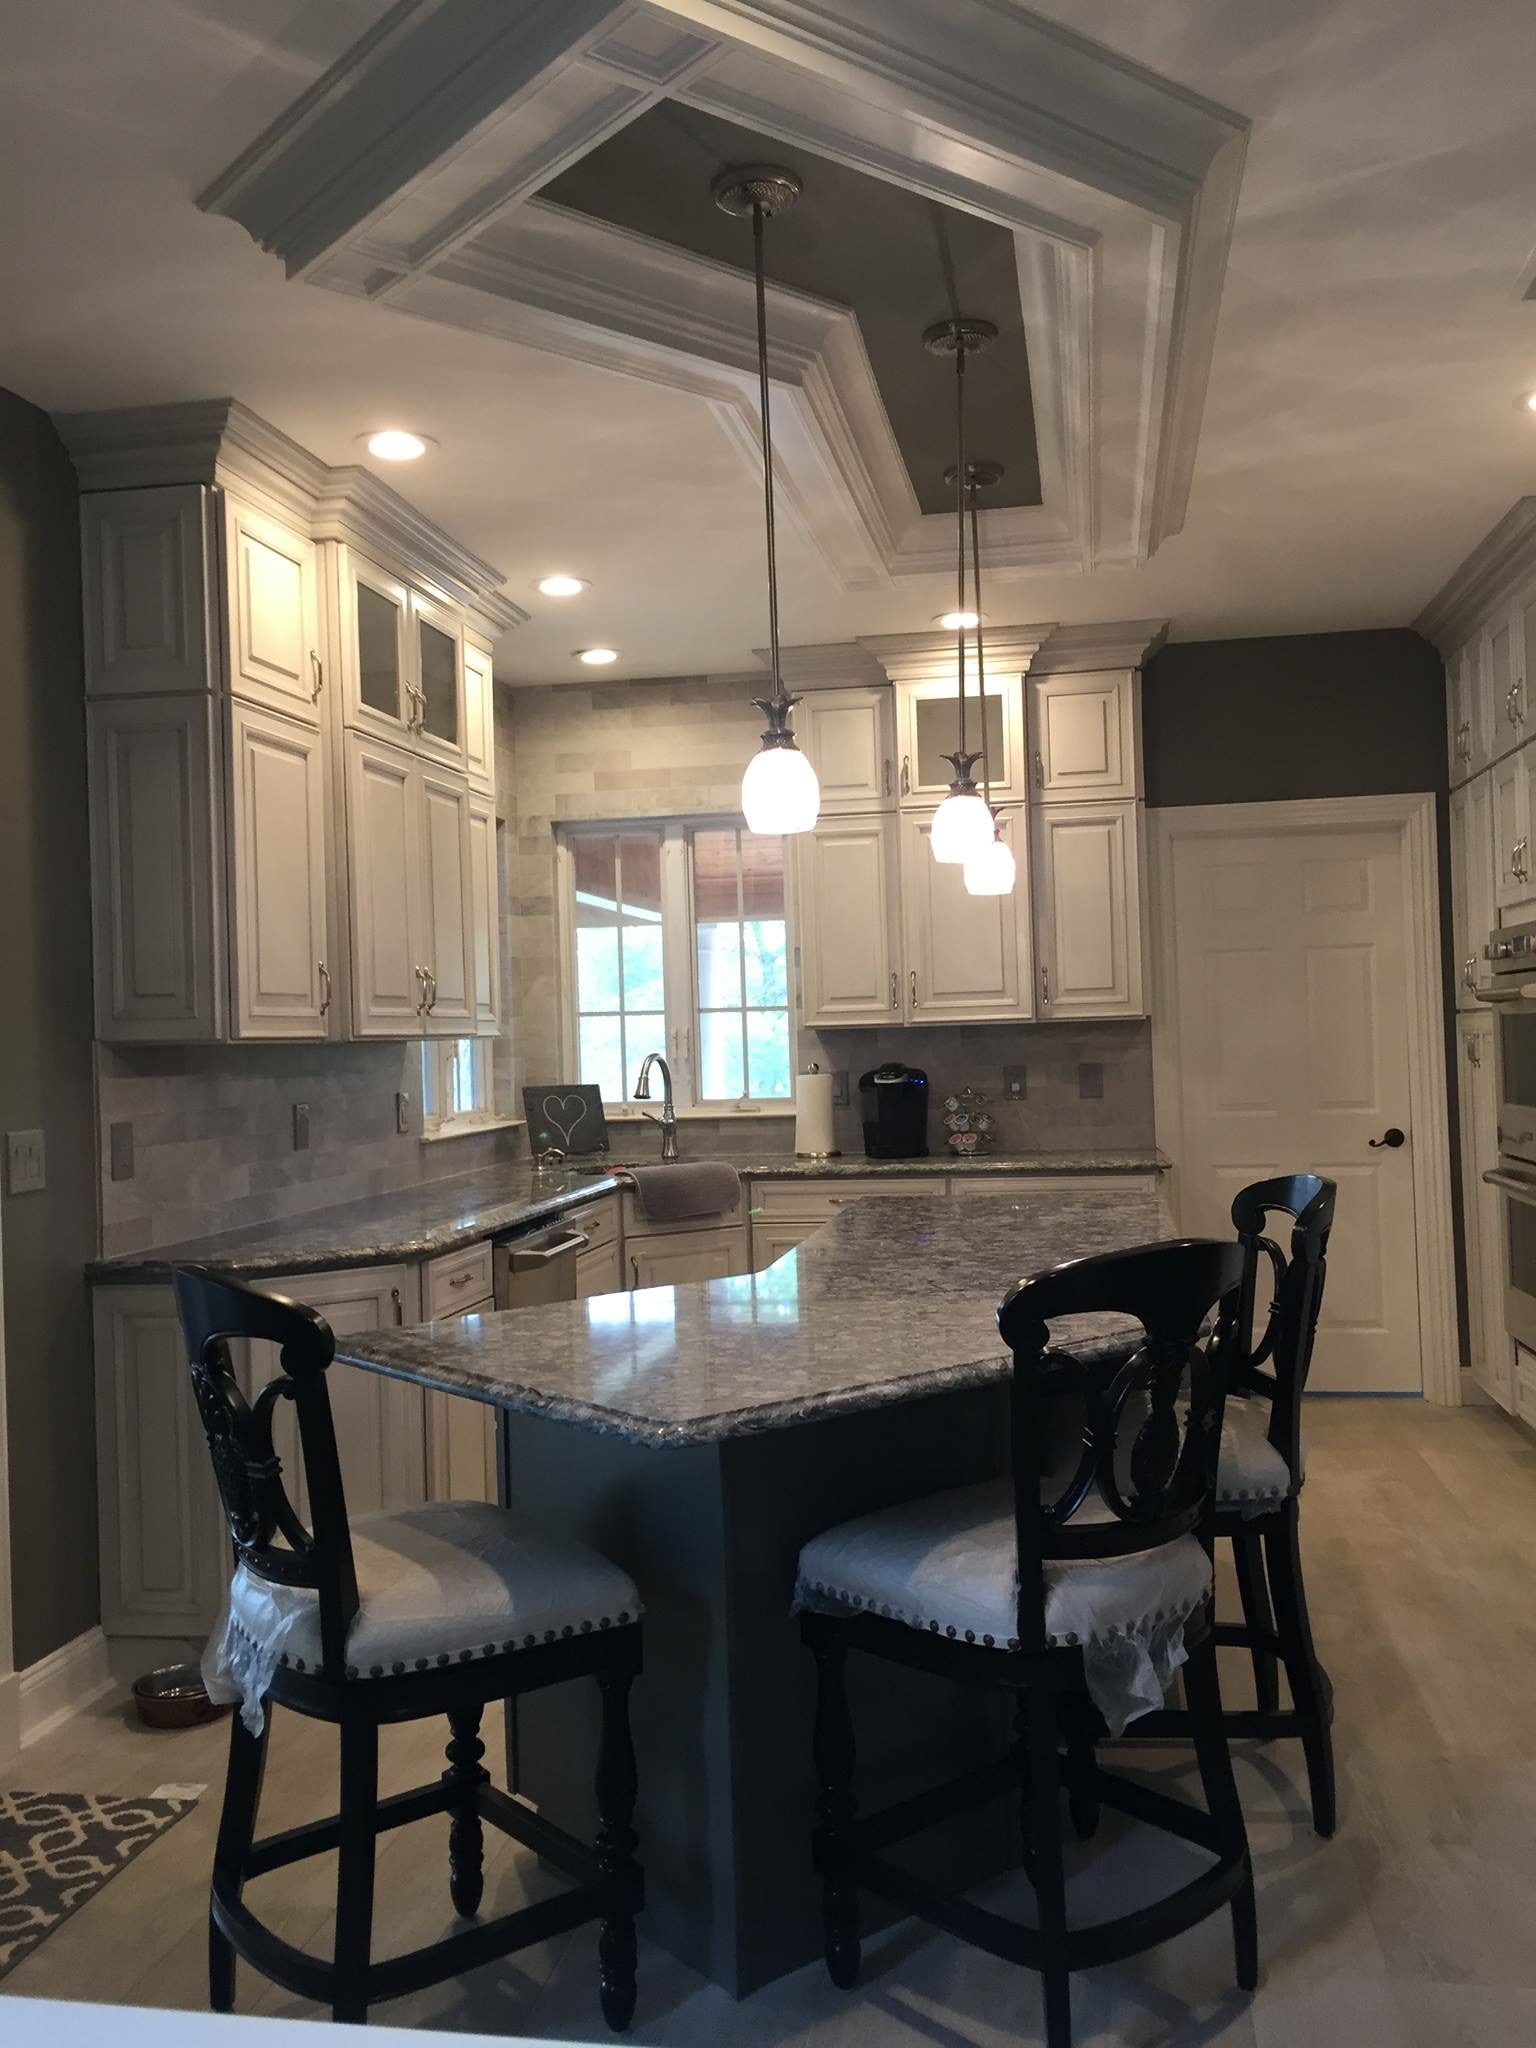 Woodline kitchen cabinets howell nj - 17 Full Displays On Site At Our Newly Renovated Showroom